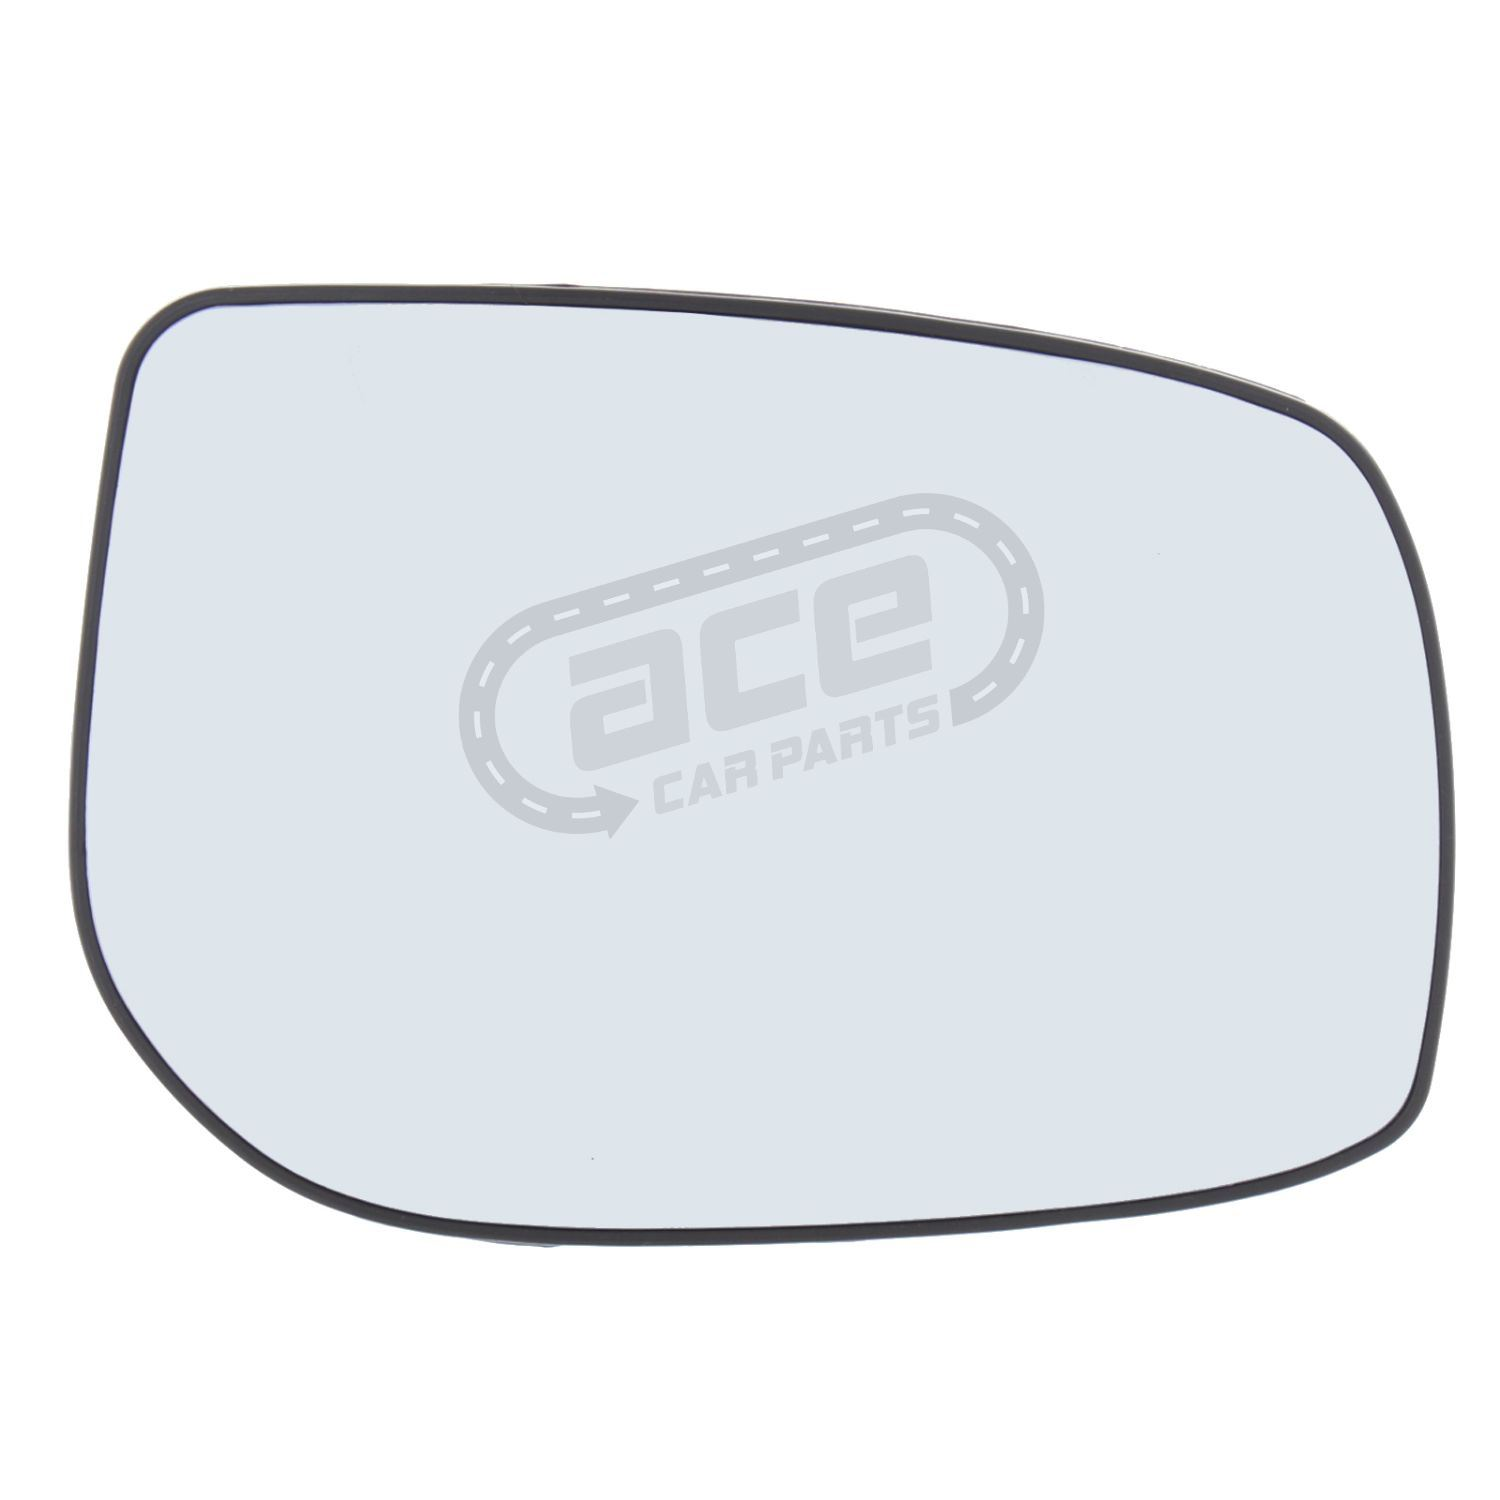 Toyota Yaris 2005-2013 right driver side convex mirror glass 39RS